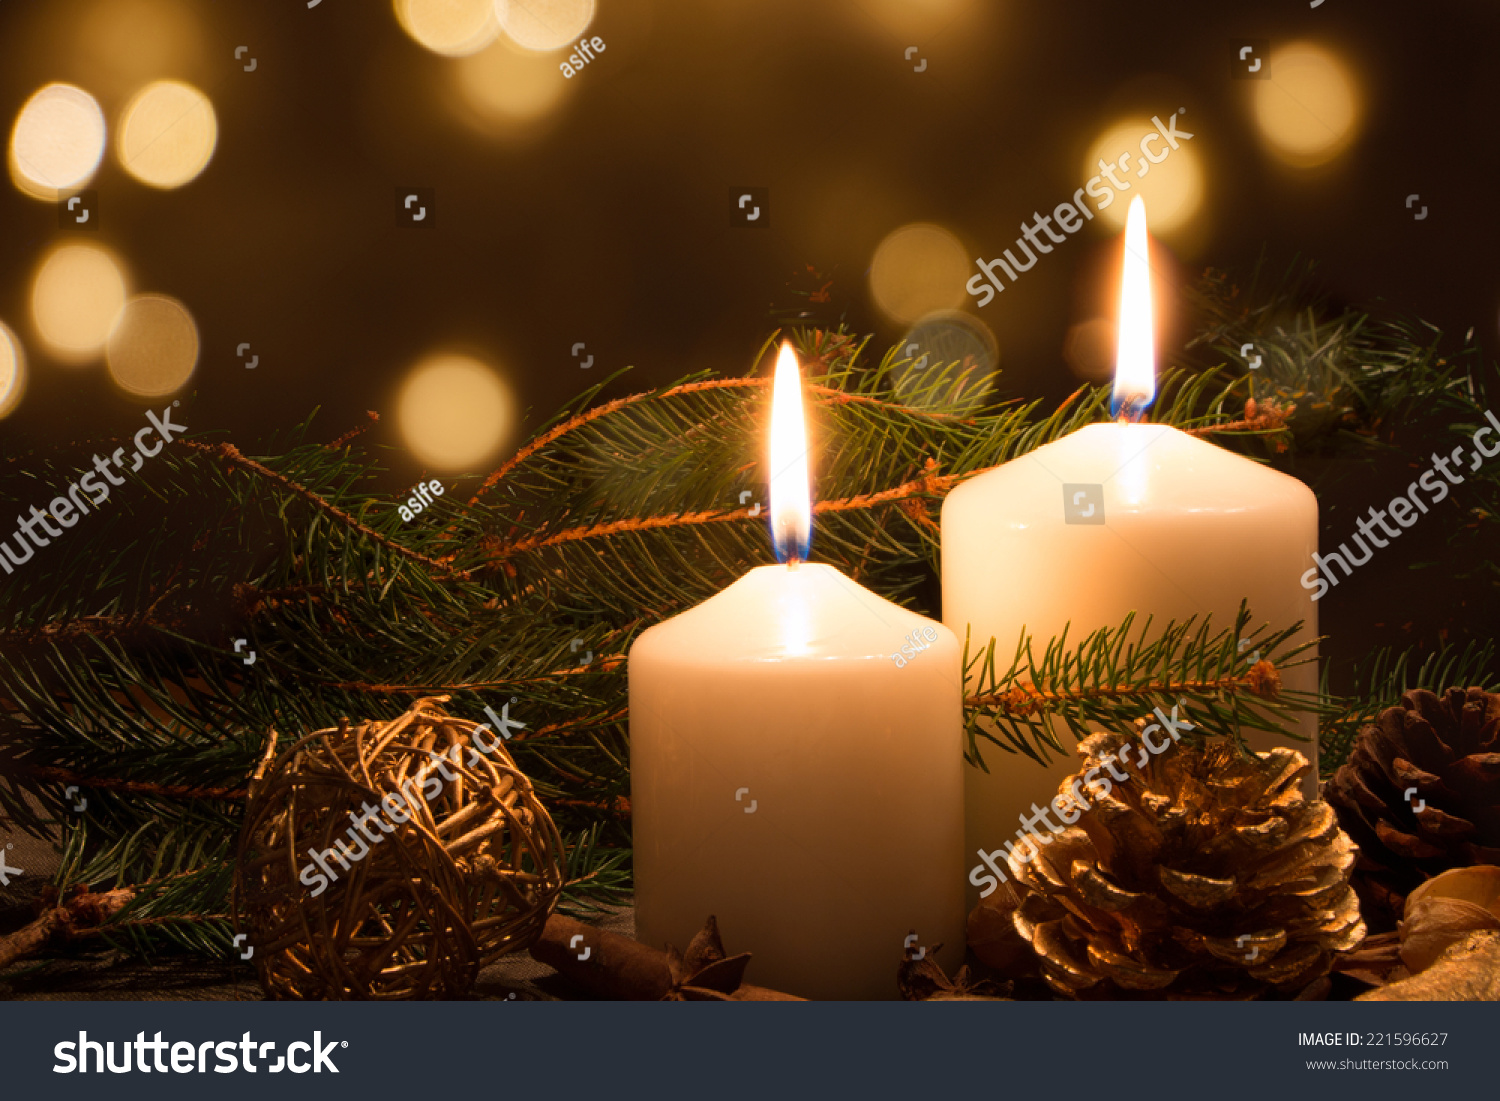 Christmas candles and ornaments over dark background with for Christmas candles and ornaments